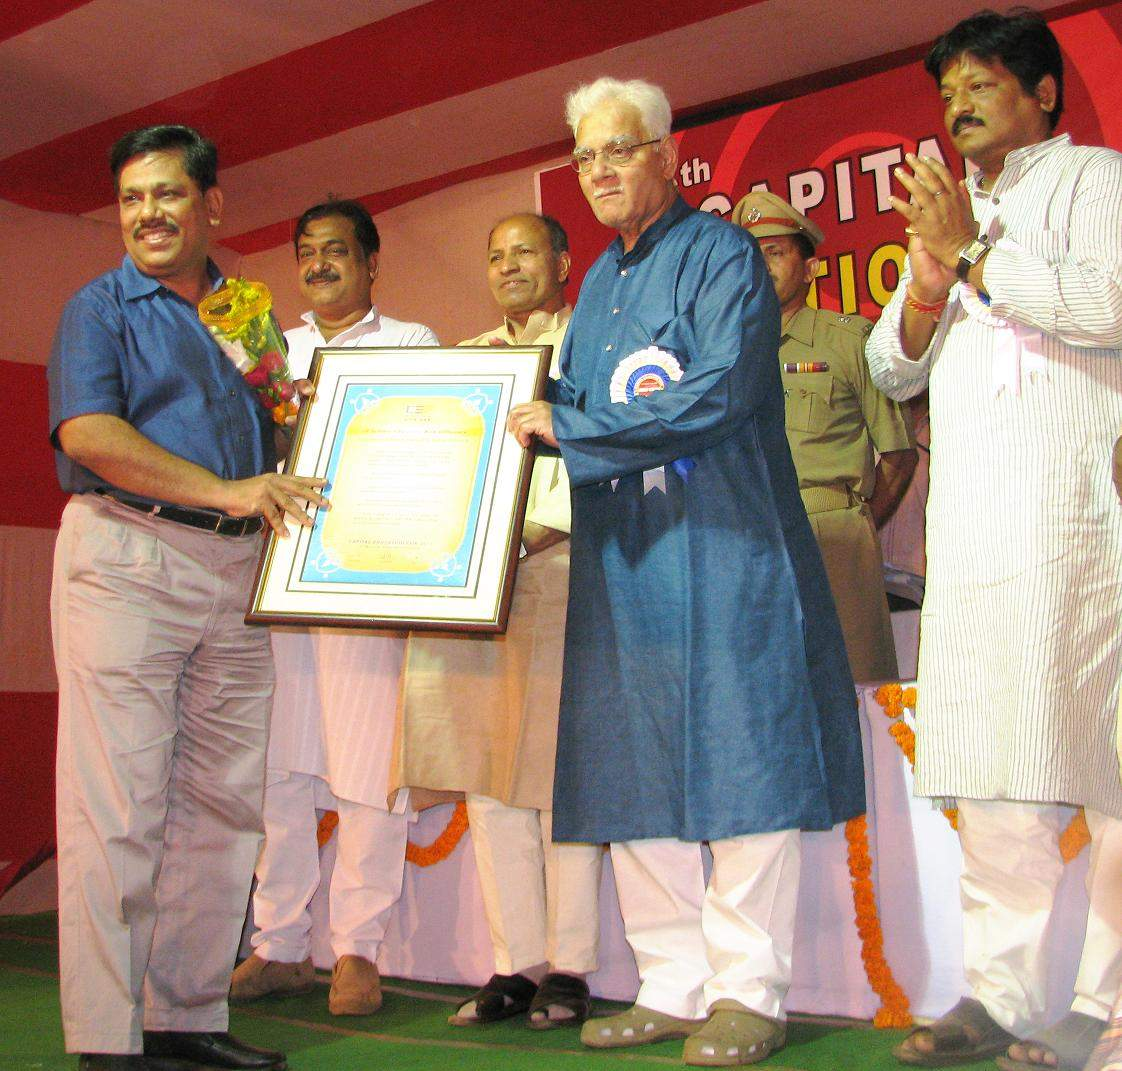 Awarded as the Best +2 Science college of Odisha in Capital Edication Fair - 2011 by the then Hon'ble Governor of Odisha - Dr Chandrakant Bhandari